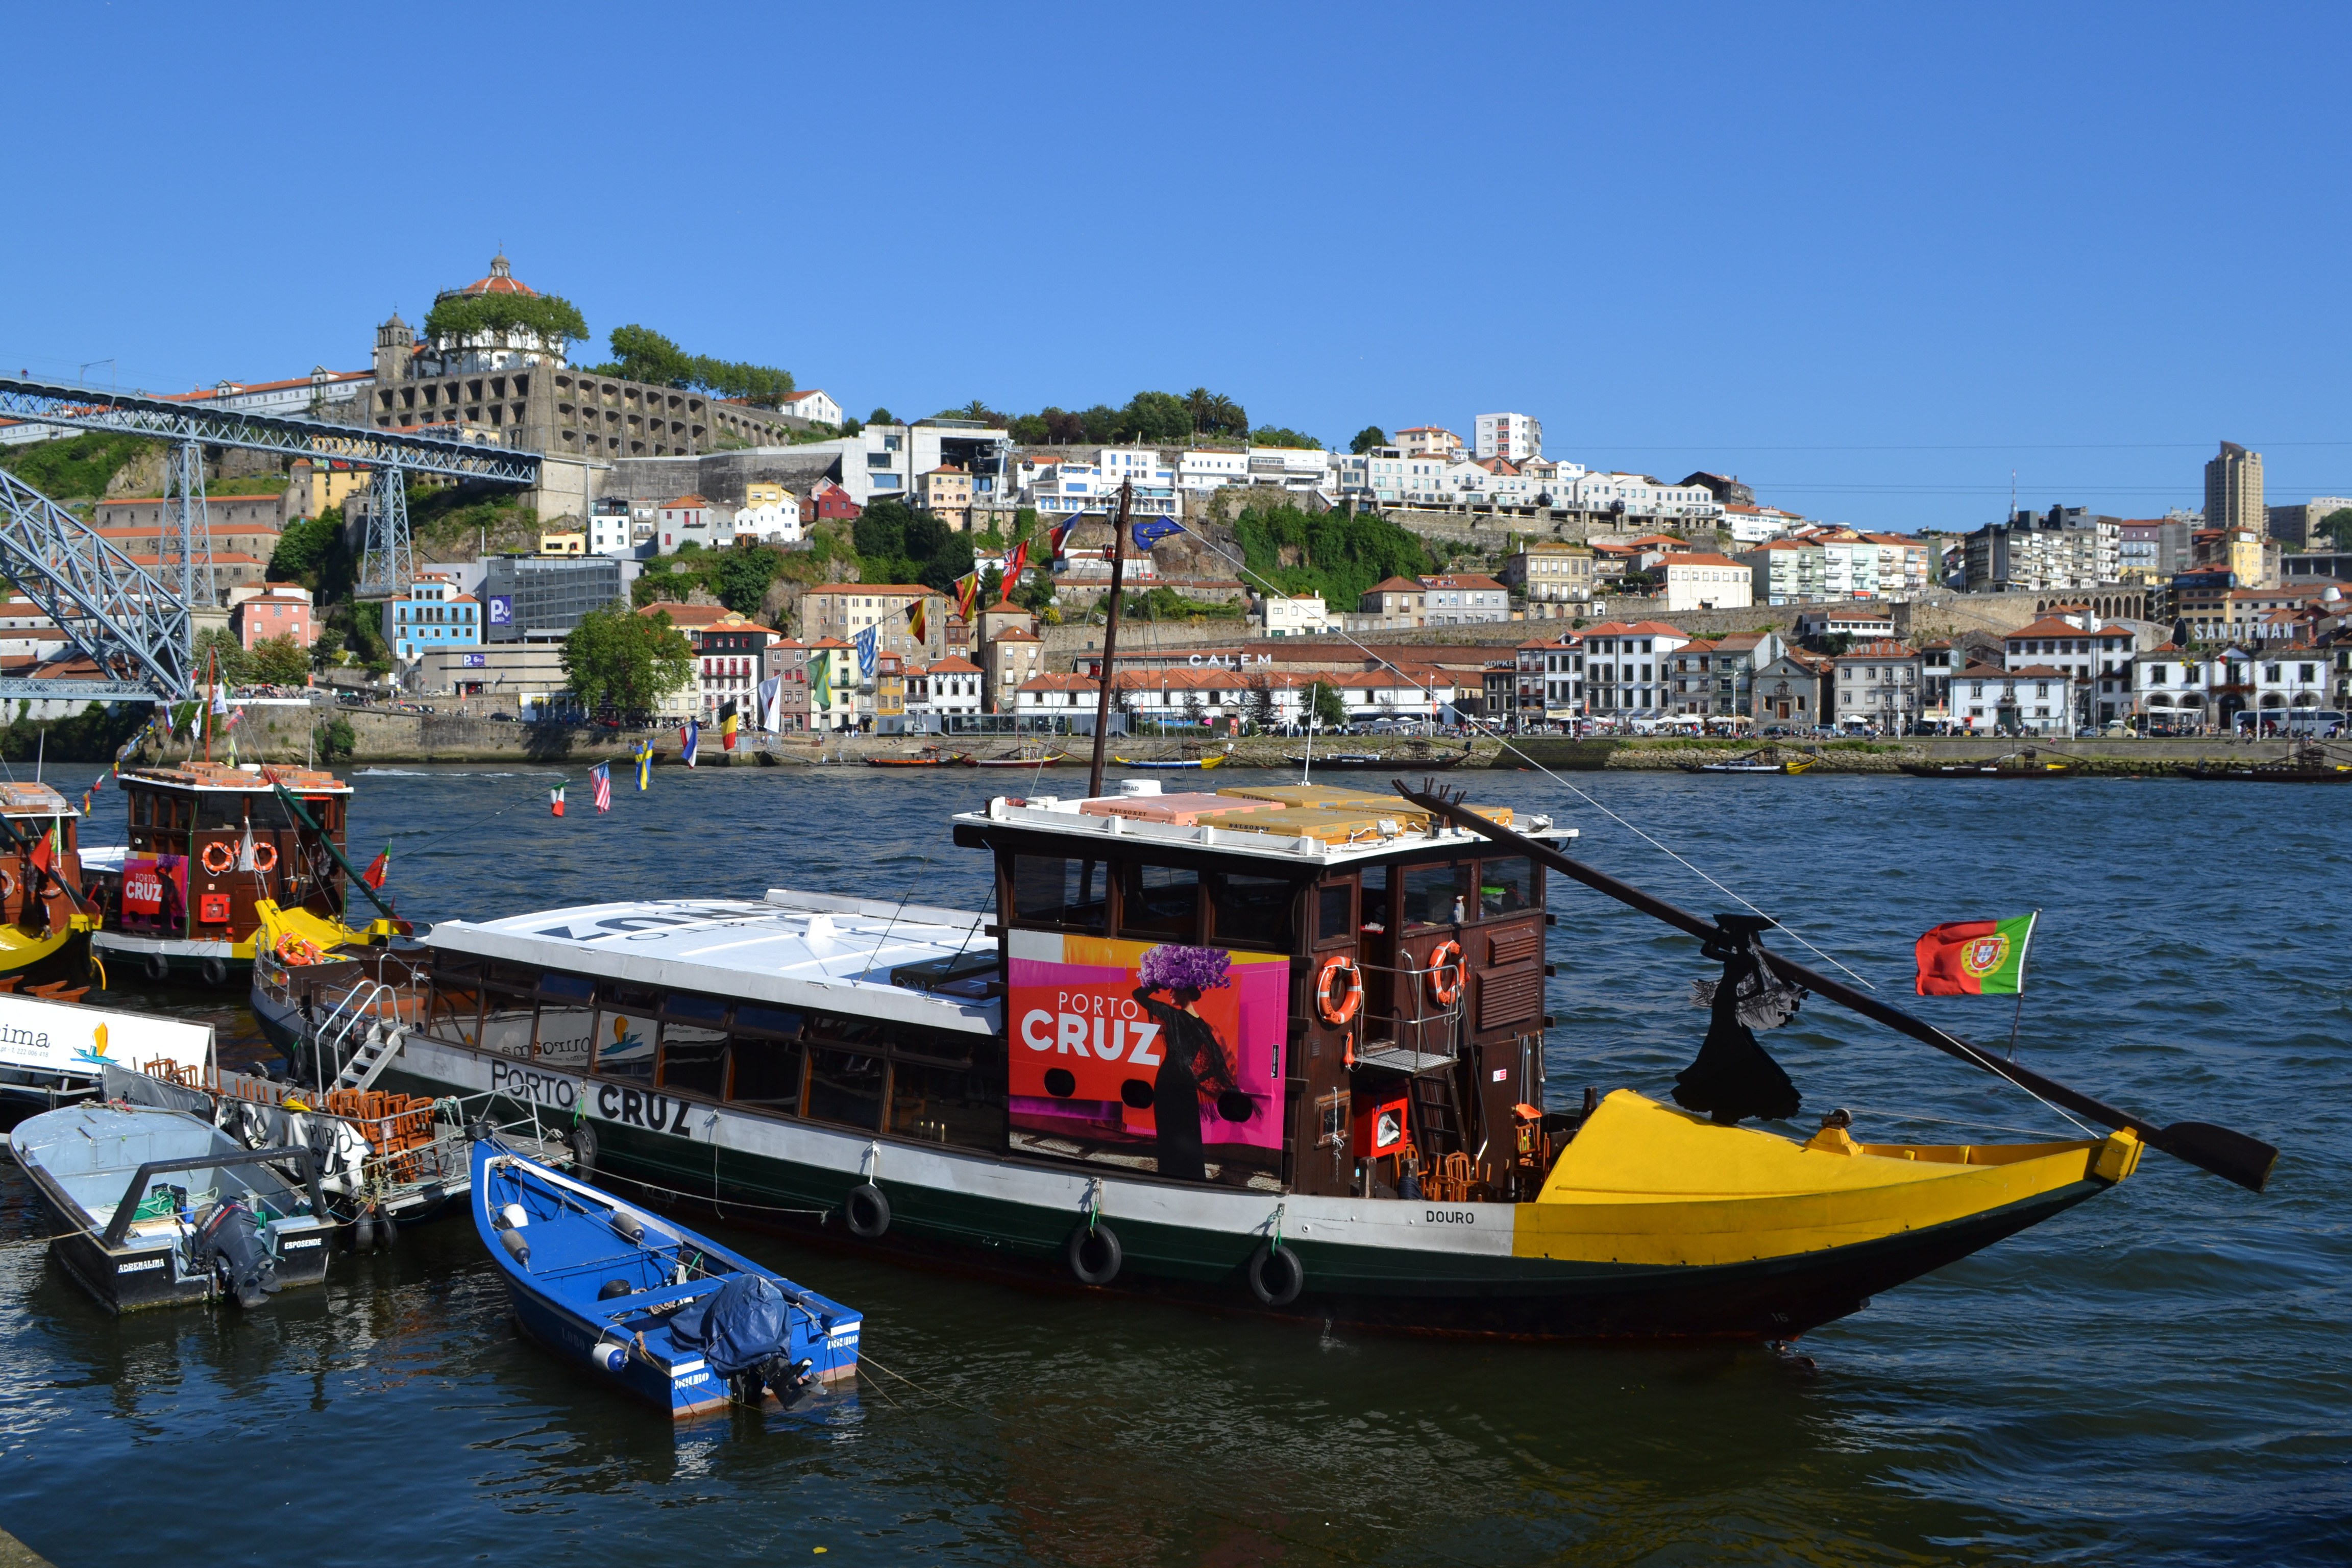 #Ecsite 2017 will take place at the heart of the historical city of Porto, Portugal